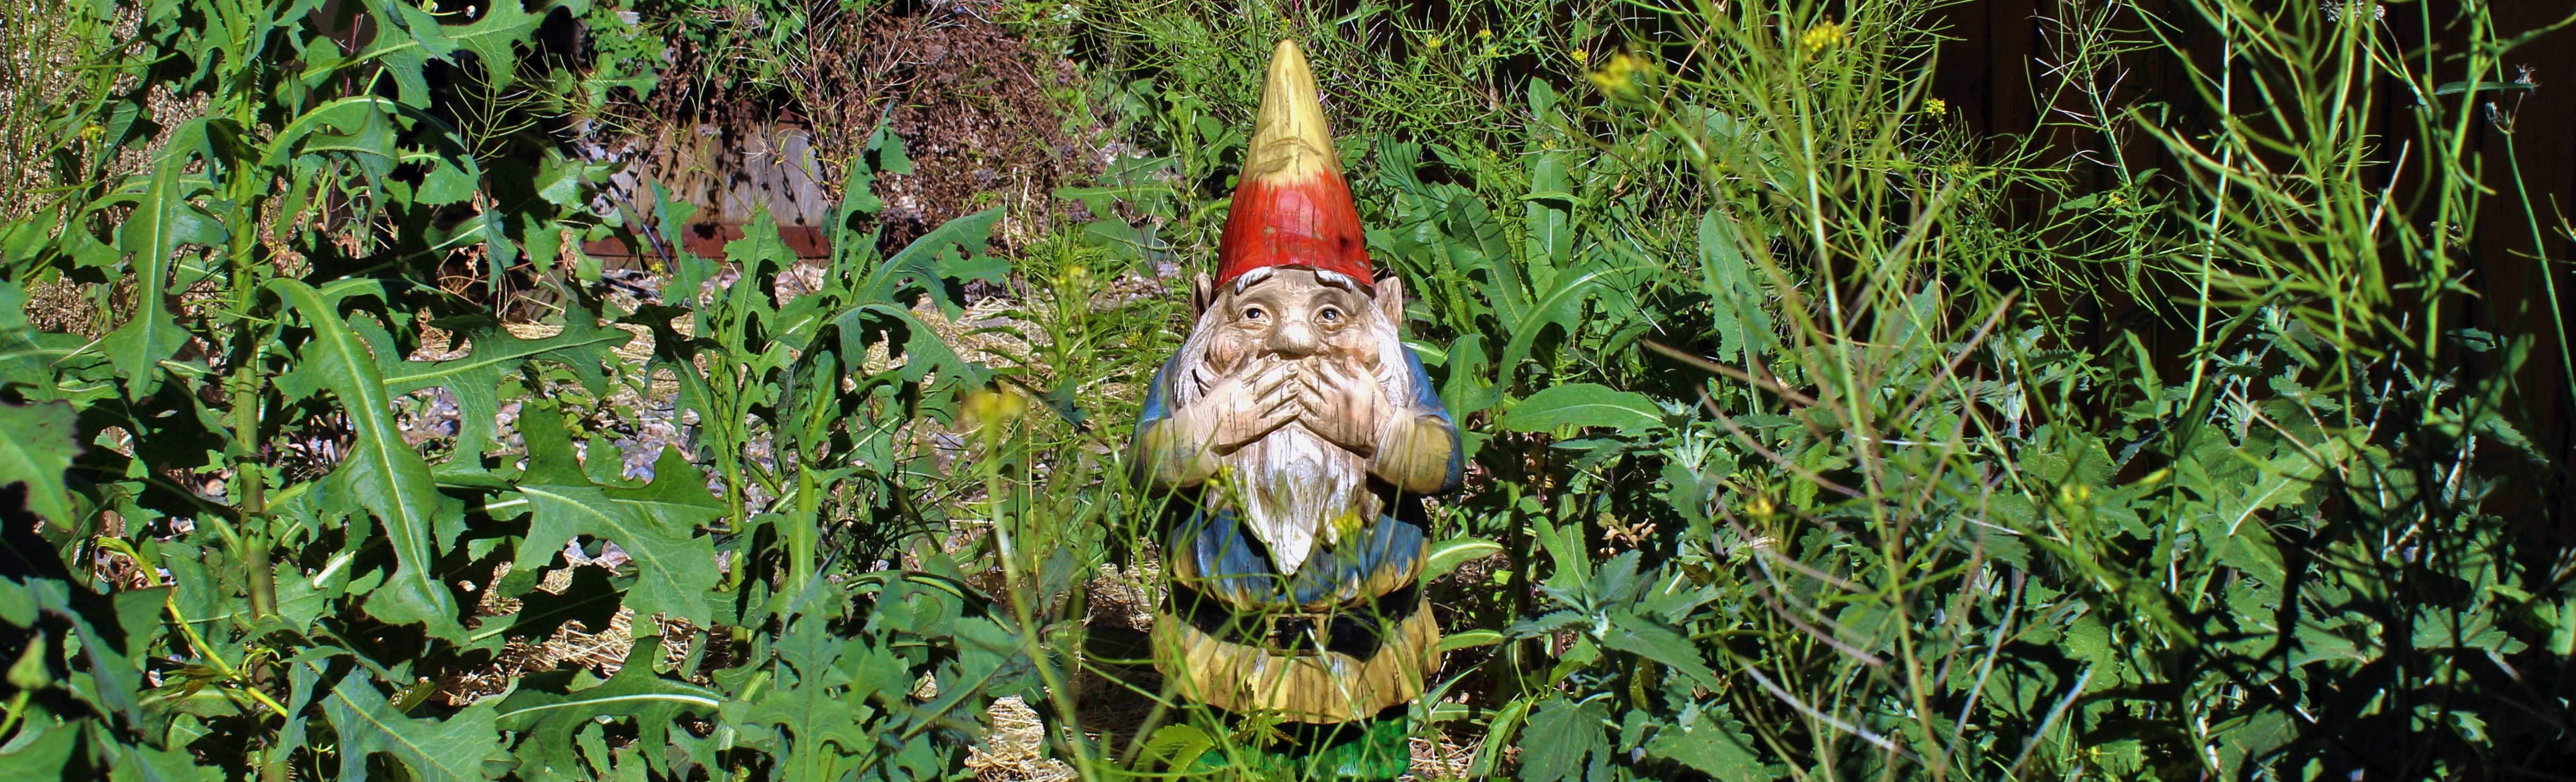 garden_gnome_cropped.jpeg